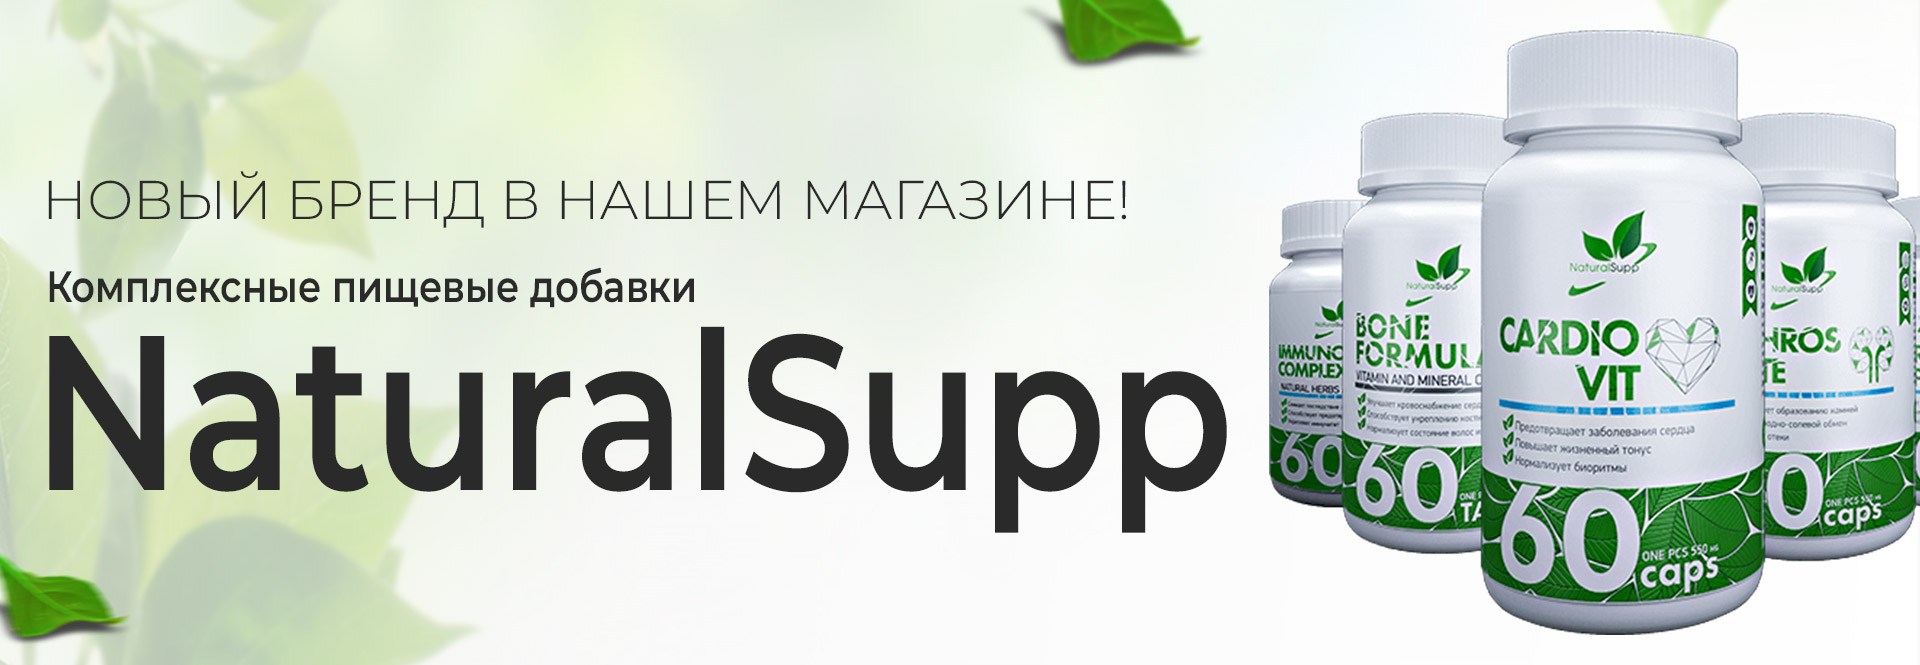 catalog/Slides/natural-supp.jpg